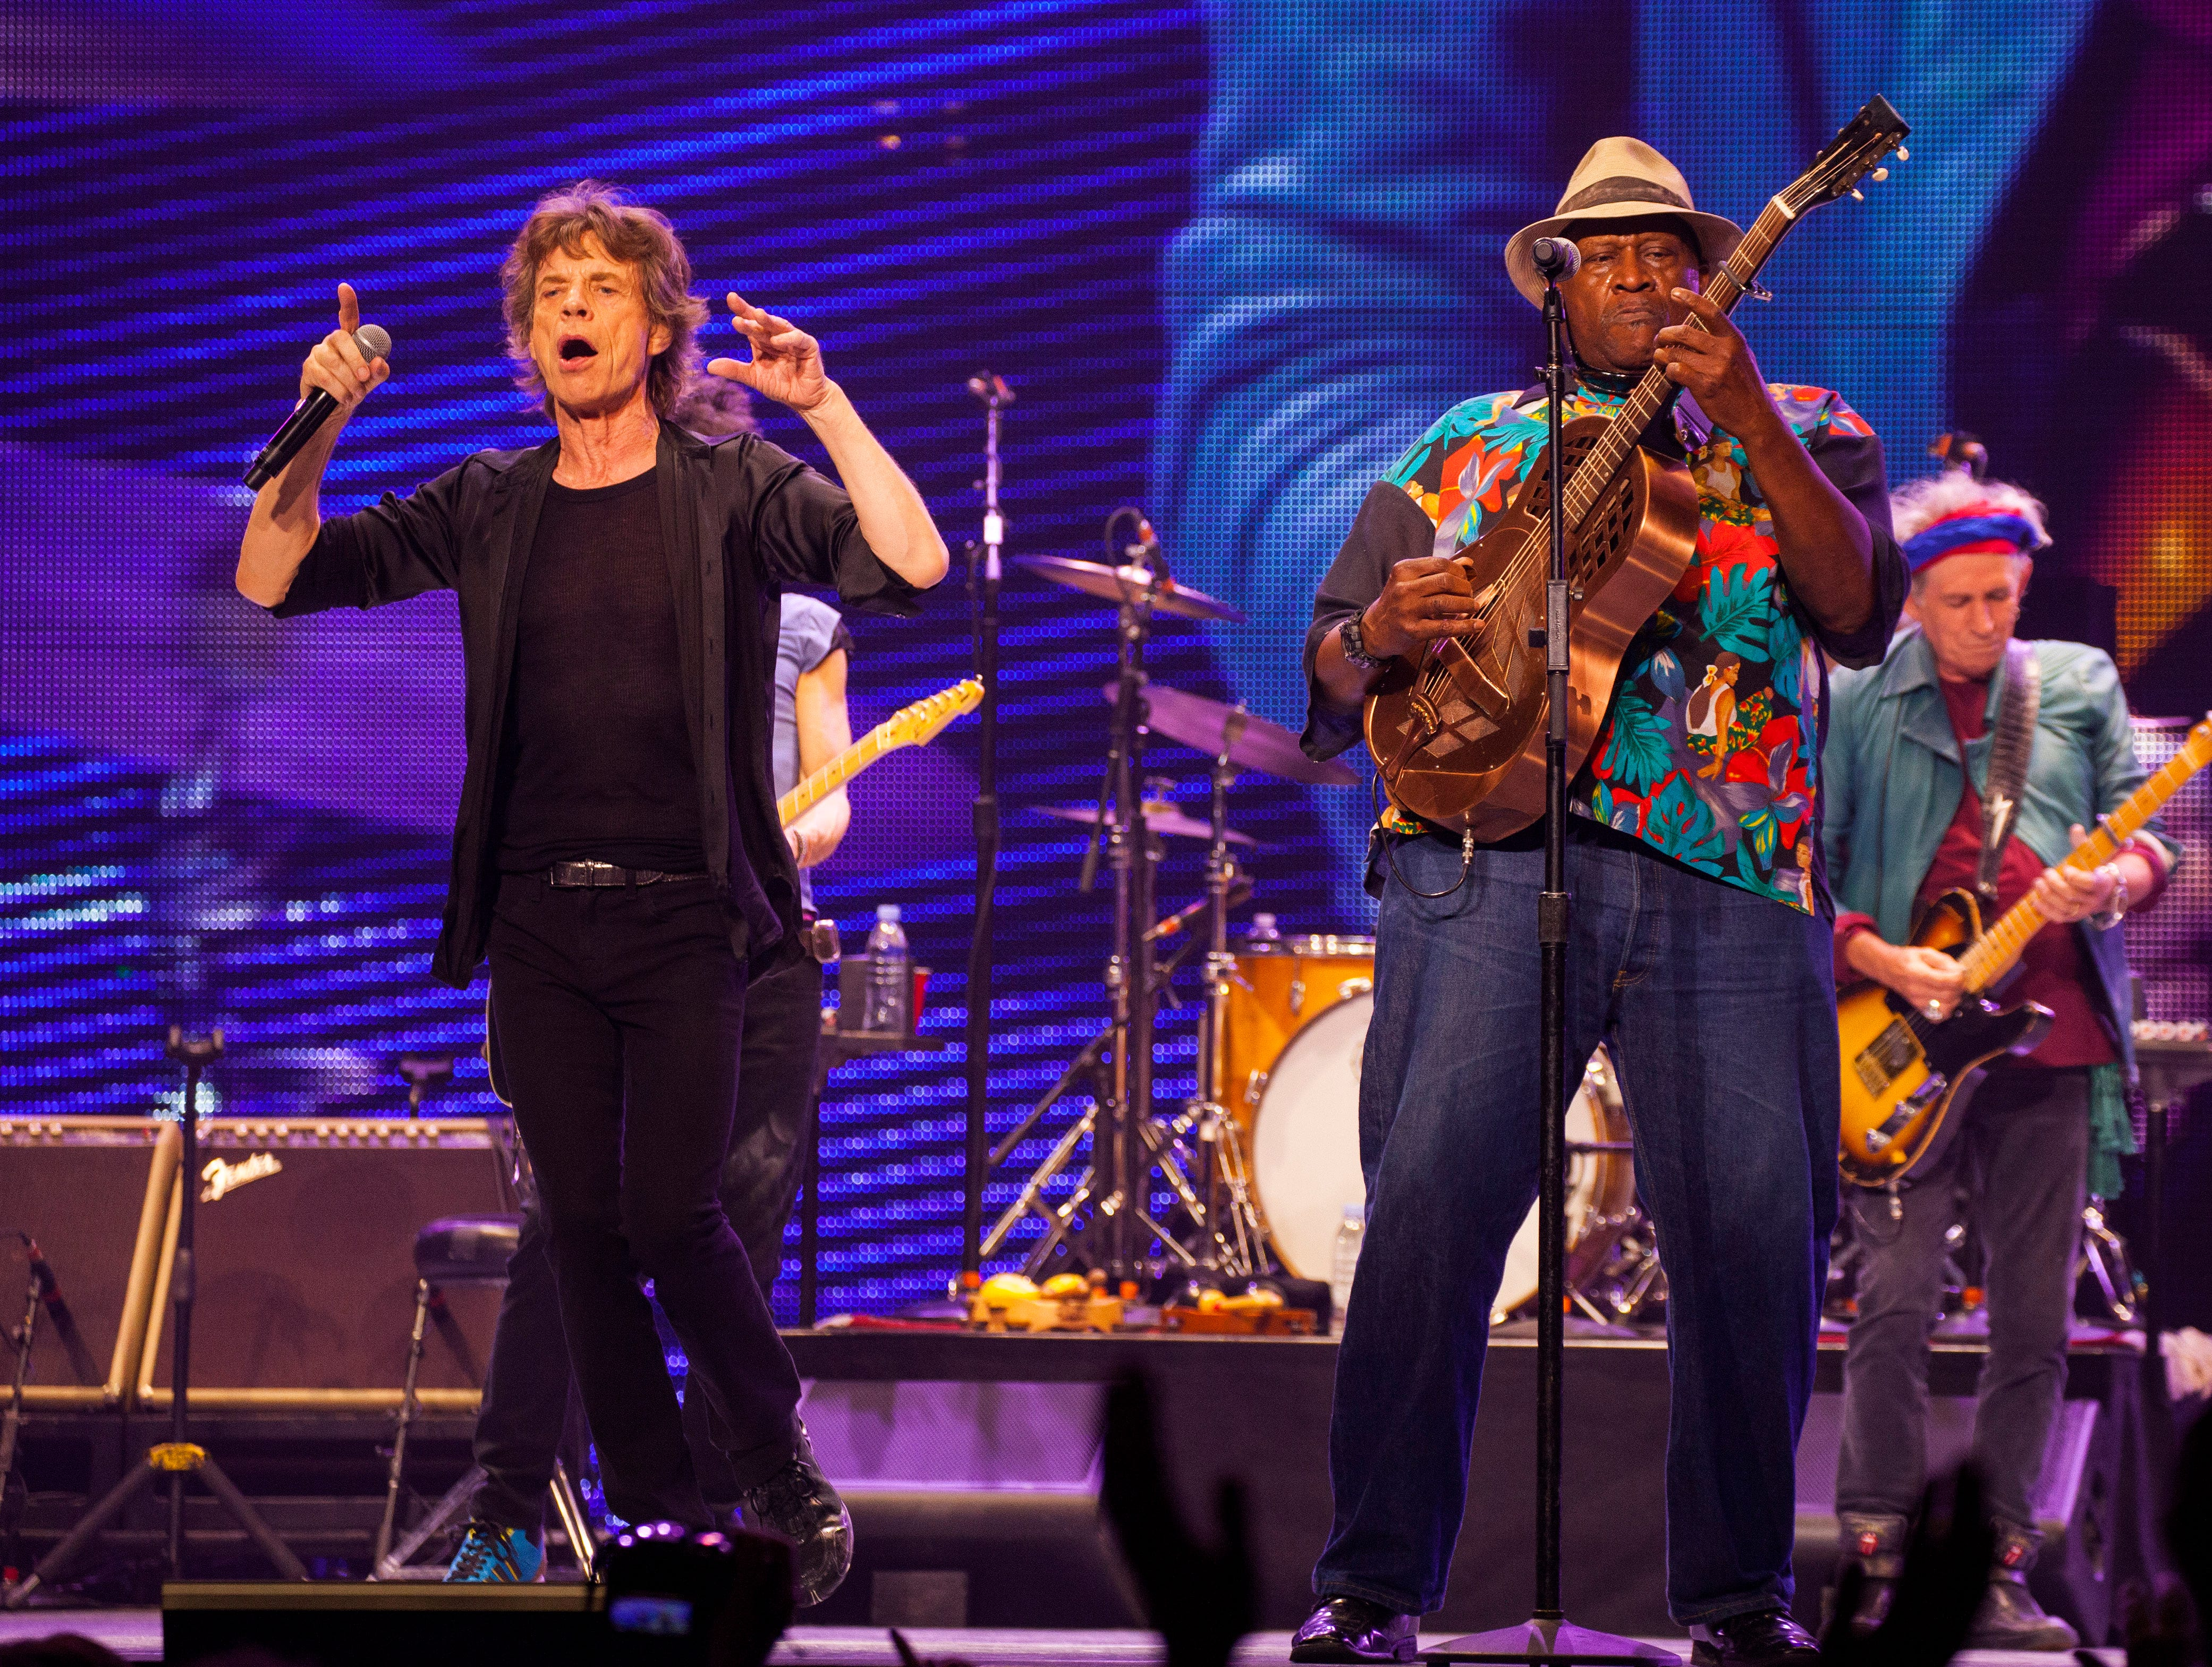 Mick Jagger, left, and Keith Richards, right, of the Rolling Stones, perform with special guest Taj Mahal at the United Center on Tuesday, May 28, 2013 in Chicago. (Photo by Barry Brecheisen/Invision/AP) ORG XMIT: ILBB107